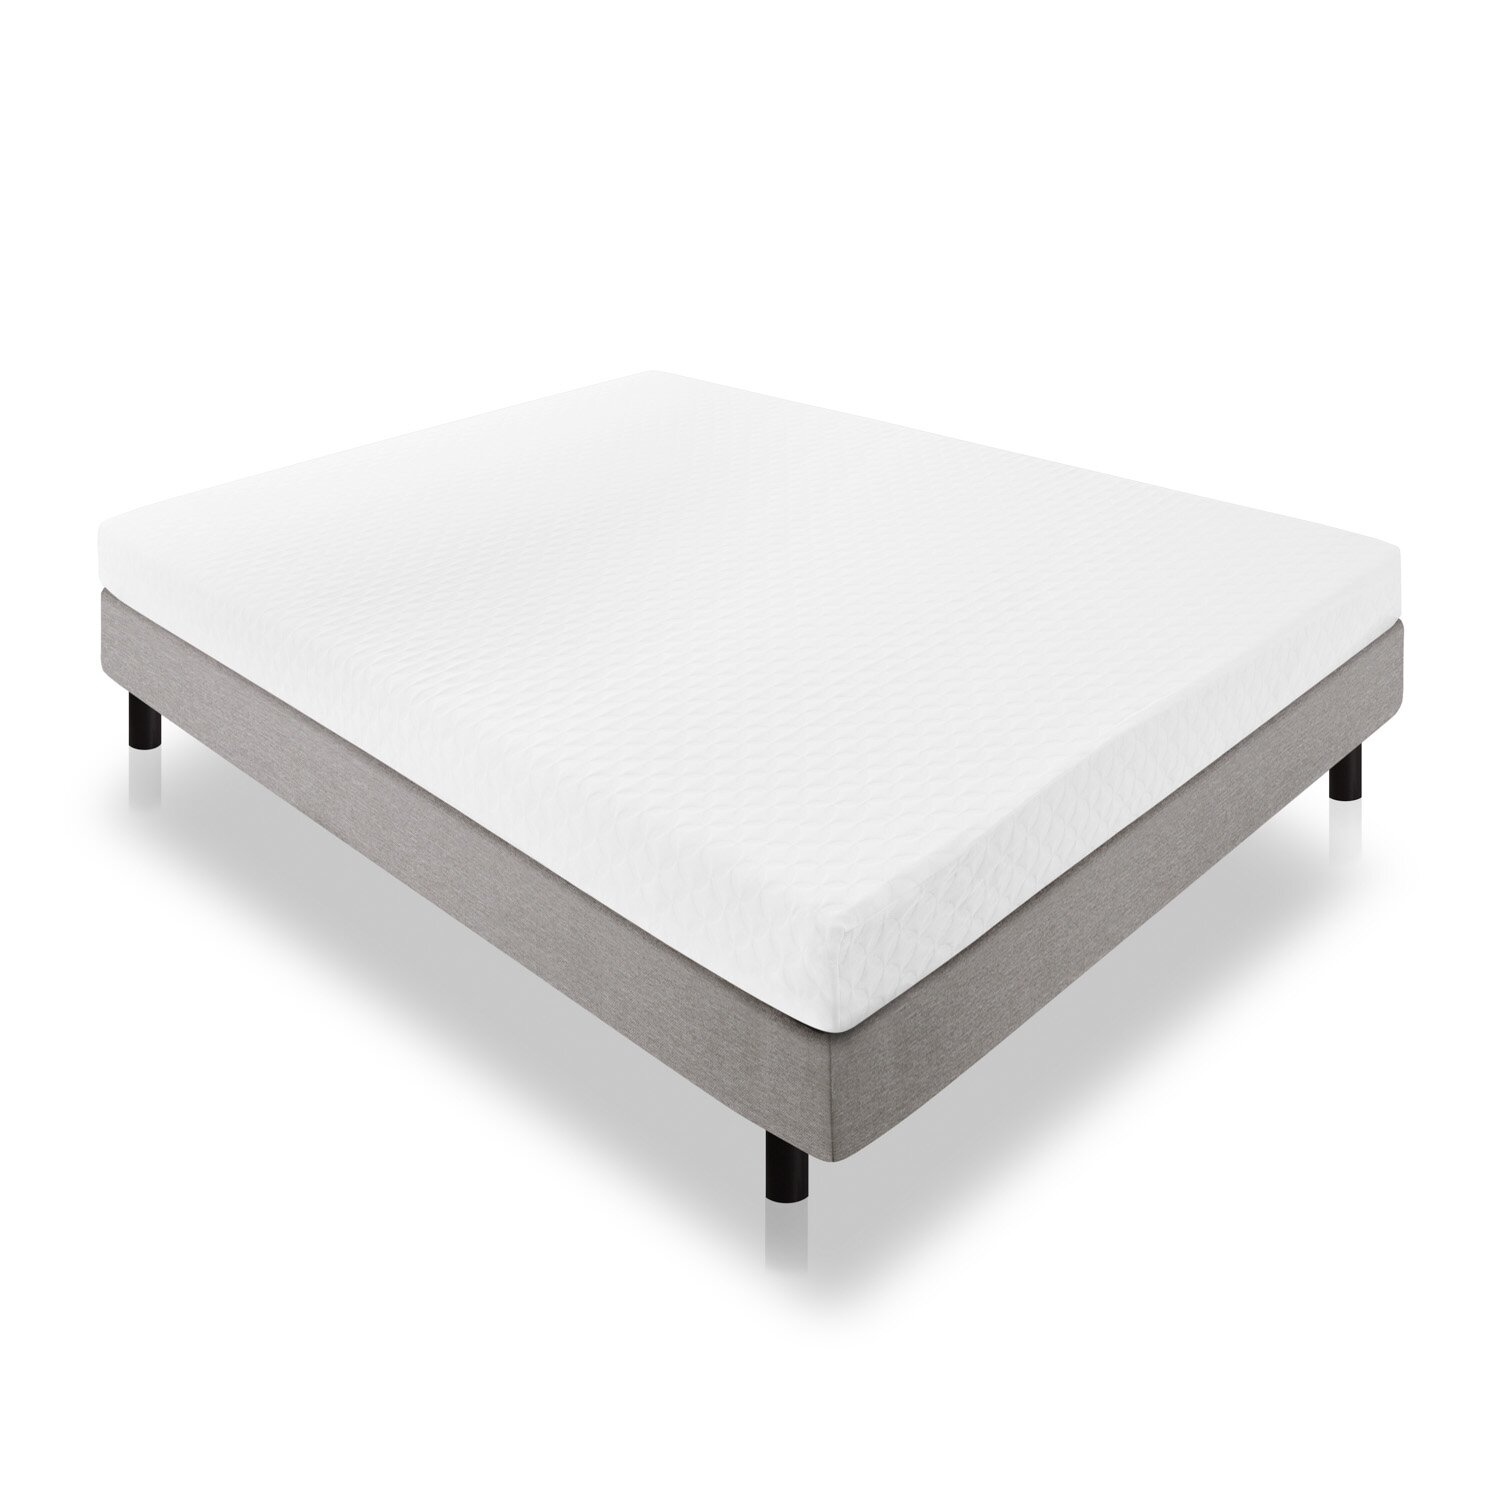 "Lucid 6"" Memory Foam Mattress & Reviews"